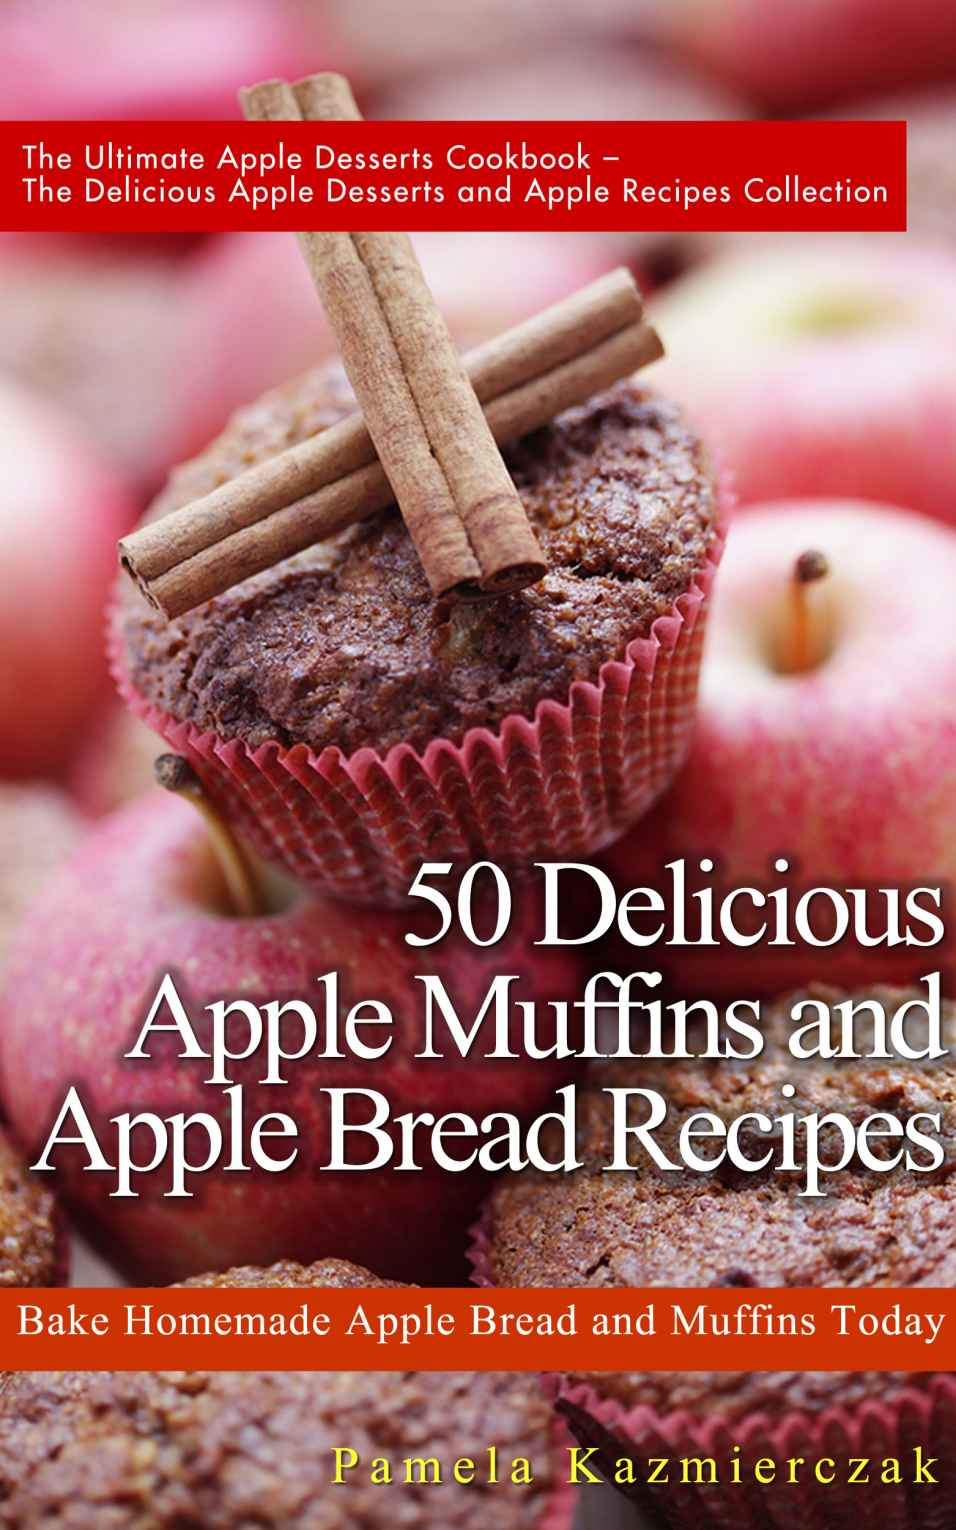 http://www.amazon.com/Delicious-Apple-Muffins-Bread-Recipes-ebook/dp/B00HTPDJCA/ref=sr_1_4?s=digital-text&ie=UTF8&qid=1411397797&sr=1-4&keywords=free+apple+recipes